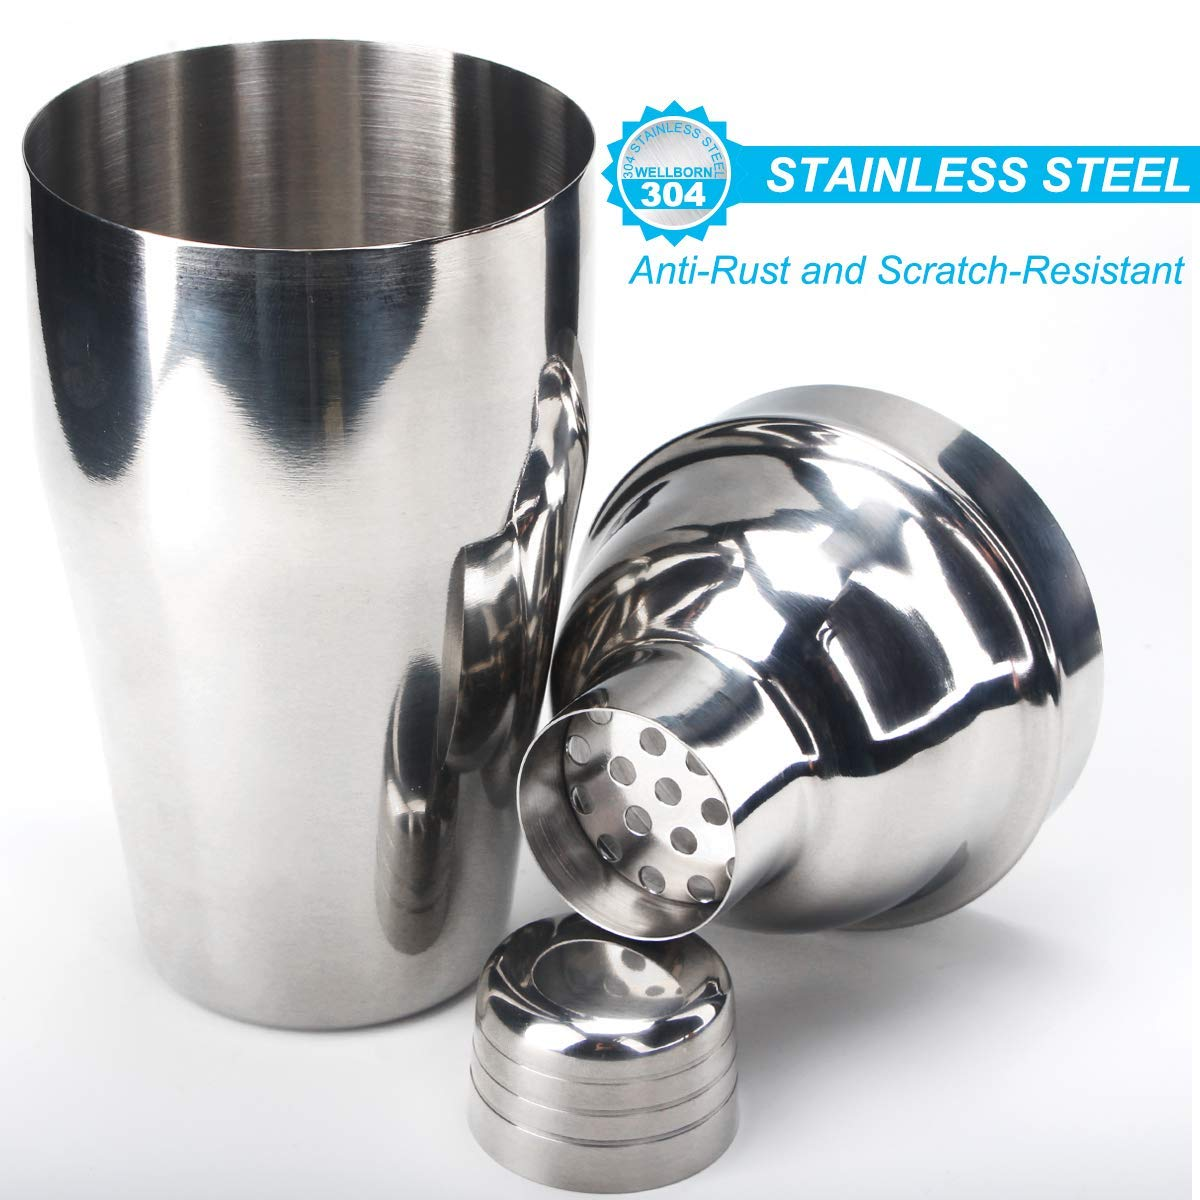 15 Piece Bartender Kit Cocktail Shaker Set with Stand: Home Bar Tools Set - Shaker with Strainer, Muddler, Jigger, Stand, Ice Thong and More - with Cocktail Recipes - Cocktail Shaker Stainless Steel by SUPERSUN (Image #2)